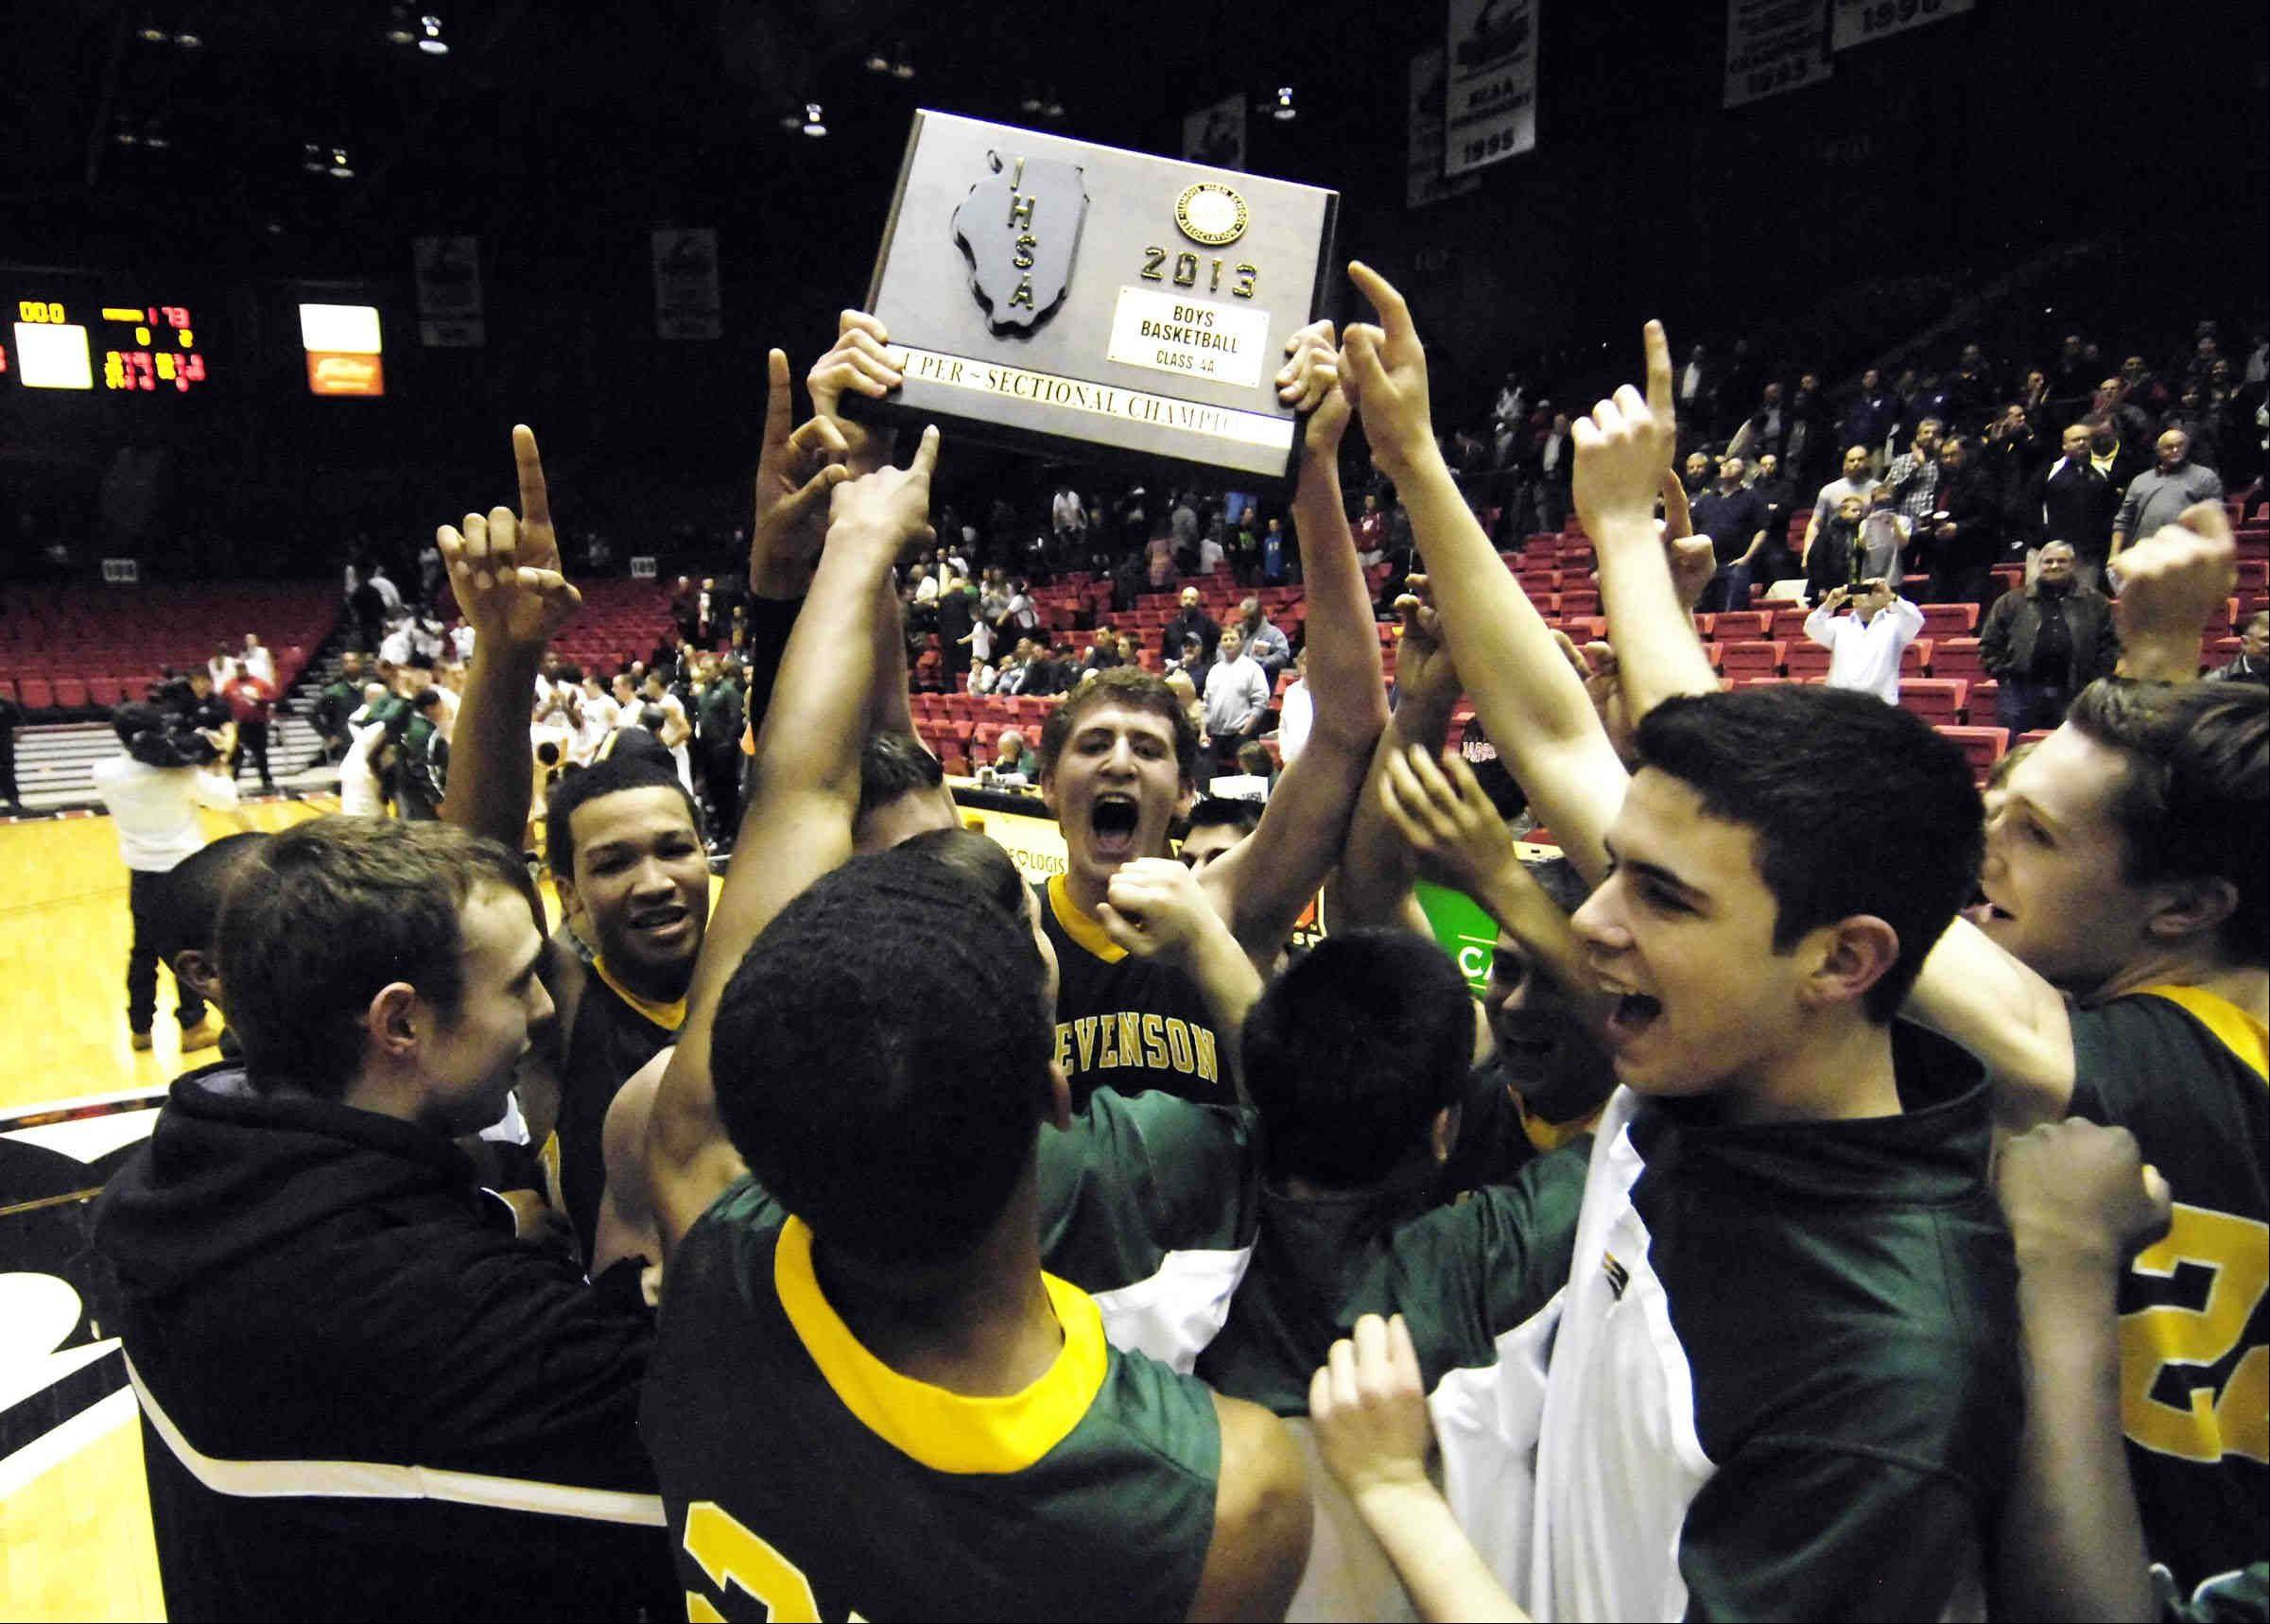 Stevenson's Andy Stempel waves the plaque after defeating Rockford Boylan Tuesday in the Class 4A NIU supersectional in Dekalb.